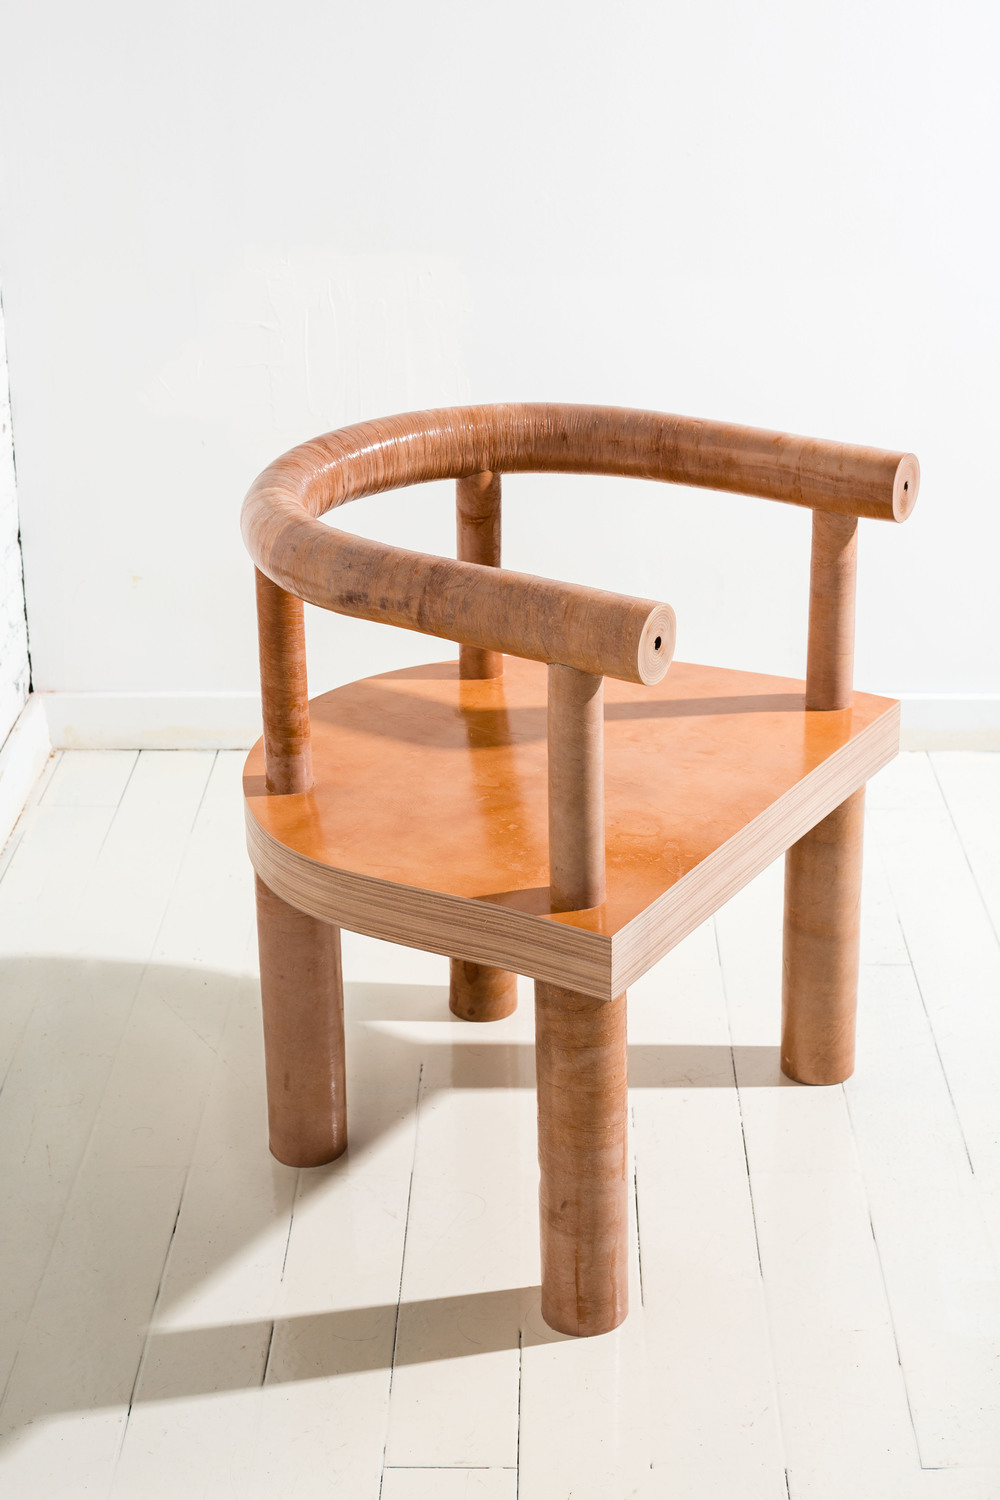 The  Stacked Leather Chair , from 'Qualities of Material' by Fort Standard